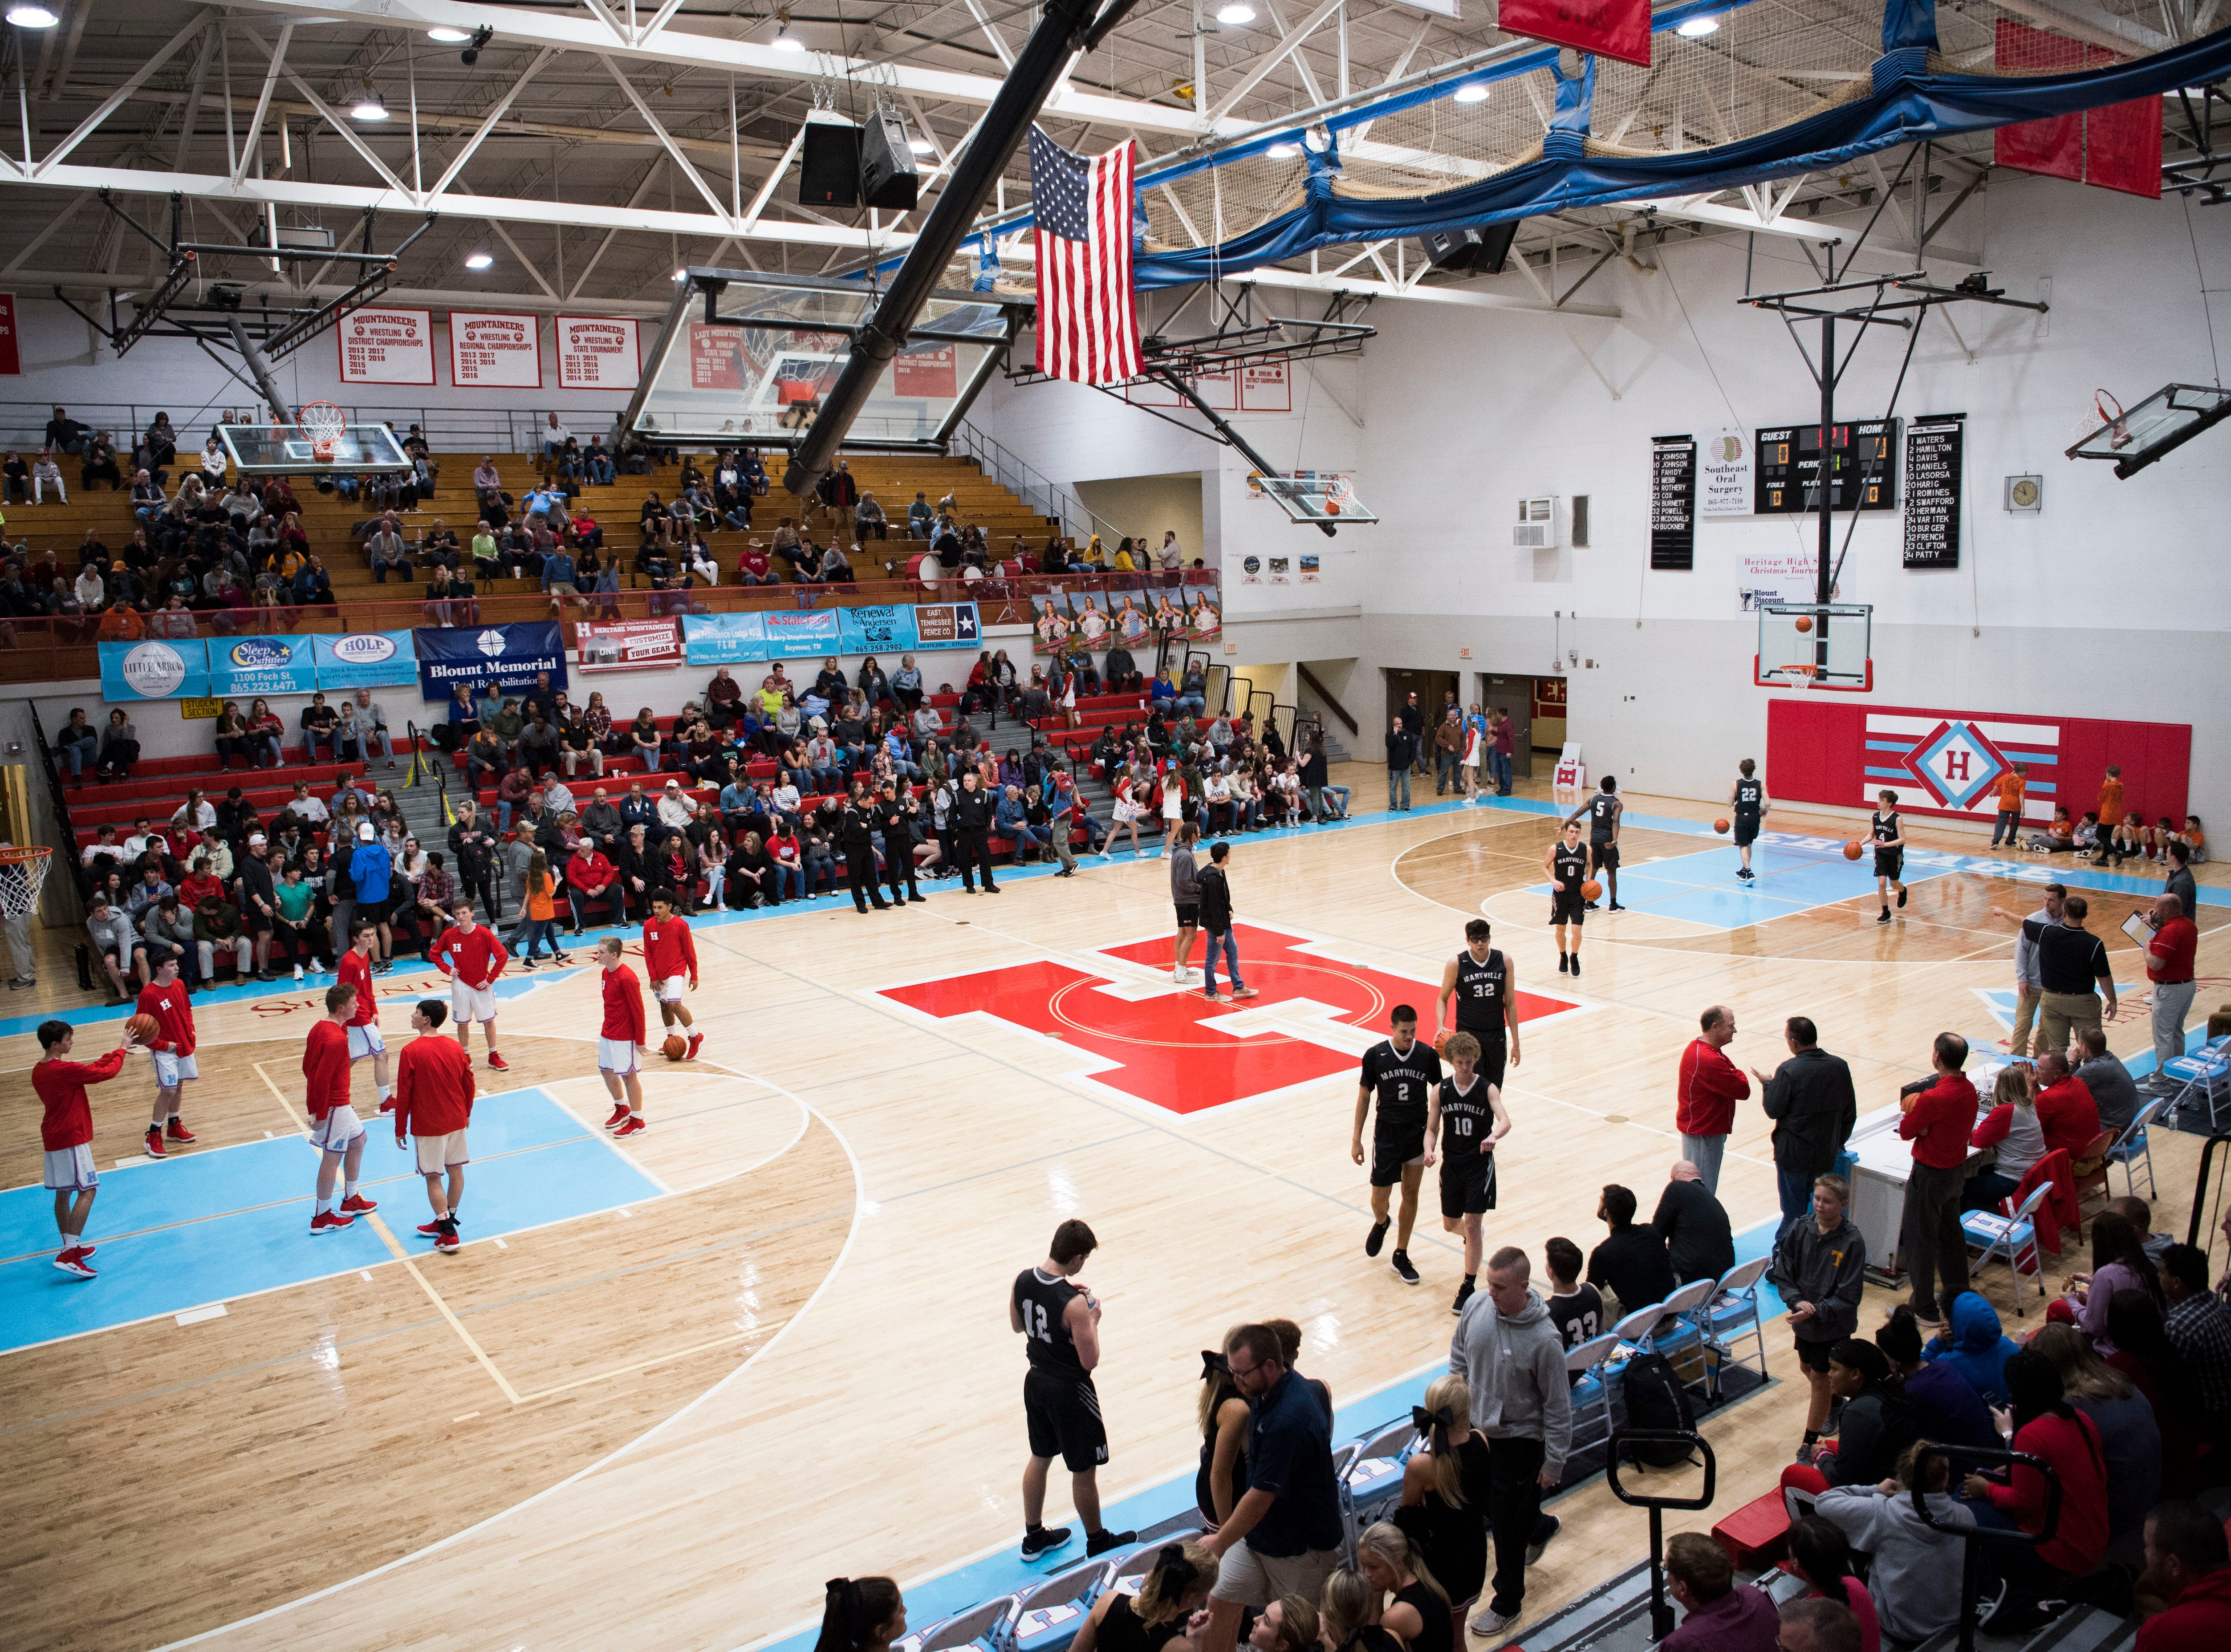 Players warm up on the court before a high school basketball game between Maryville and Heritage at Heritage Friday, Jan. 4, 2019. Both Maryville boys and girls teams beat Heritage.